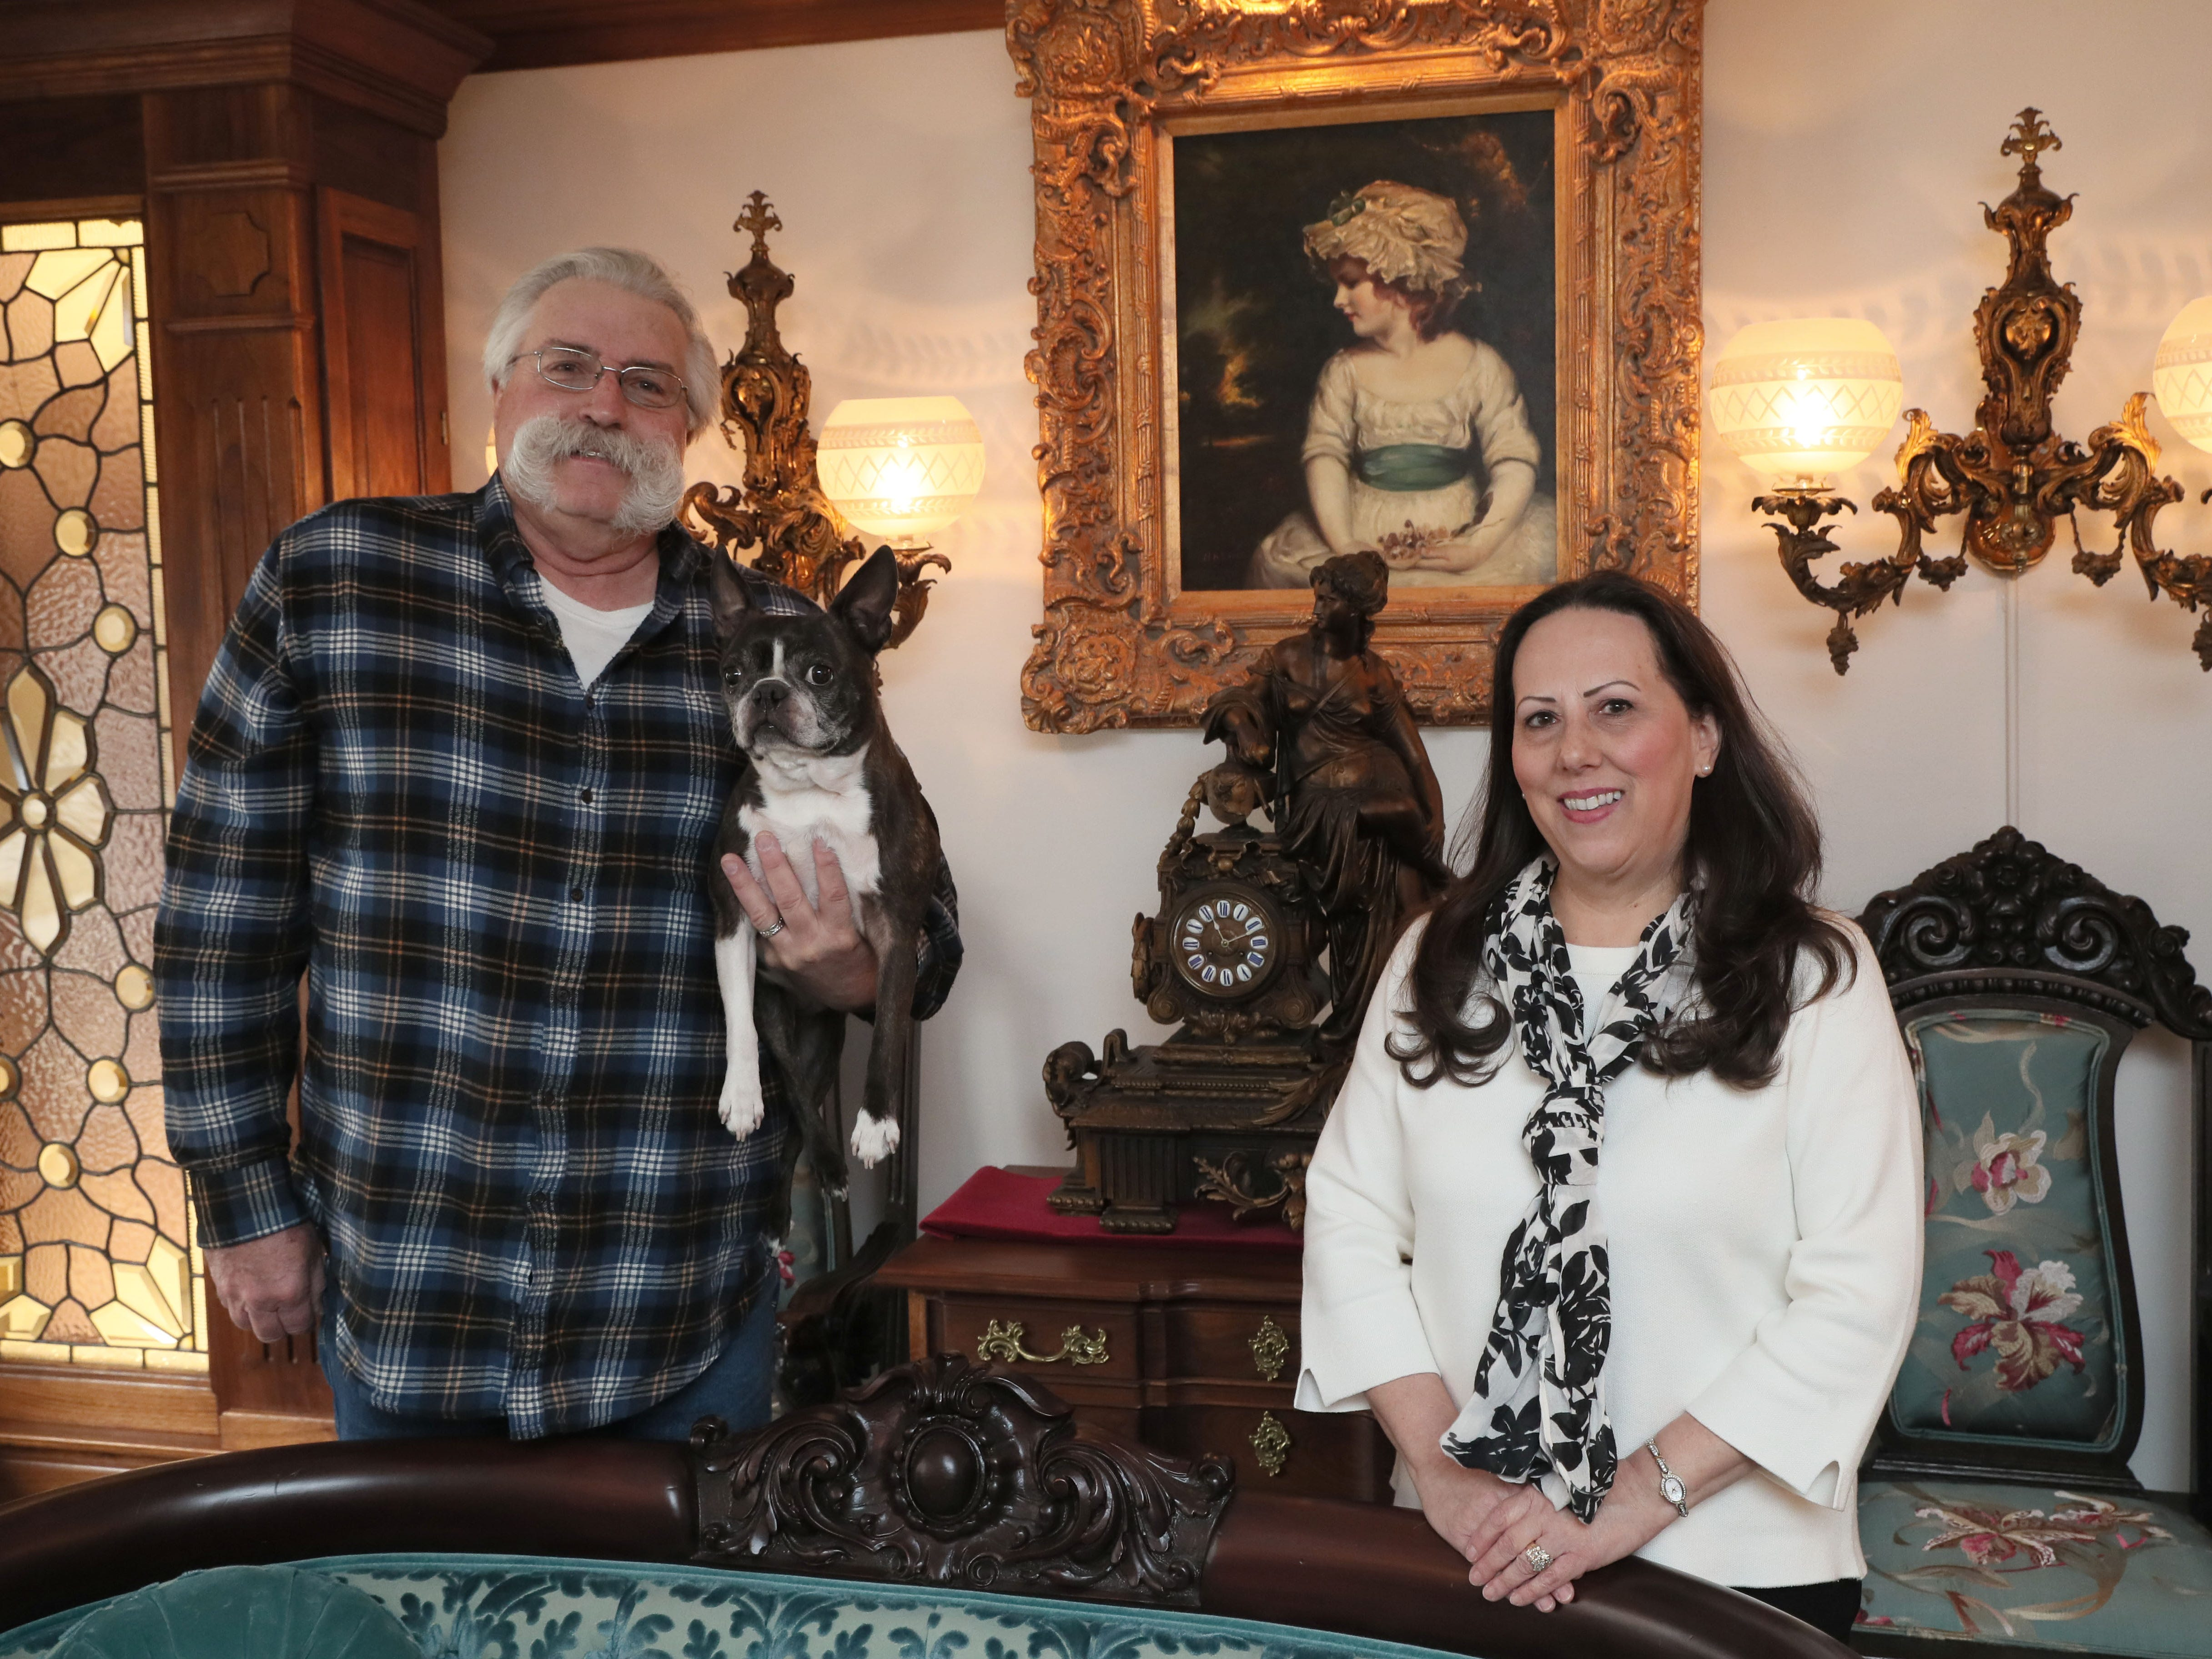 Jim Wissing, holding the family dog Ruby, and his wife, Jennifer, decorated their ranch home with antiques that give it the feel of a Victorian mansion.